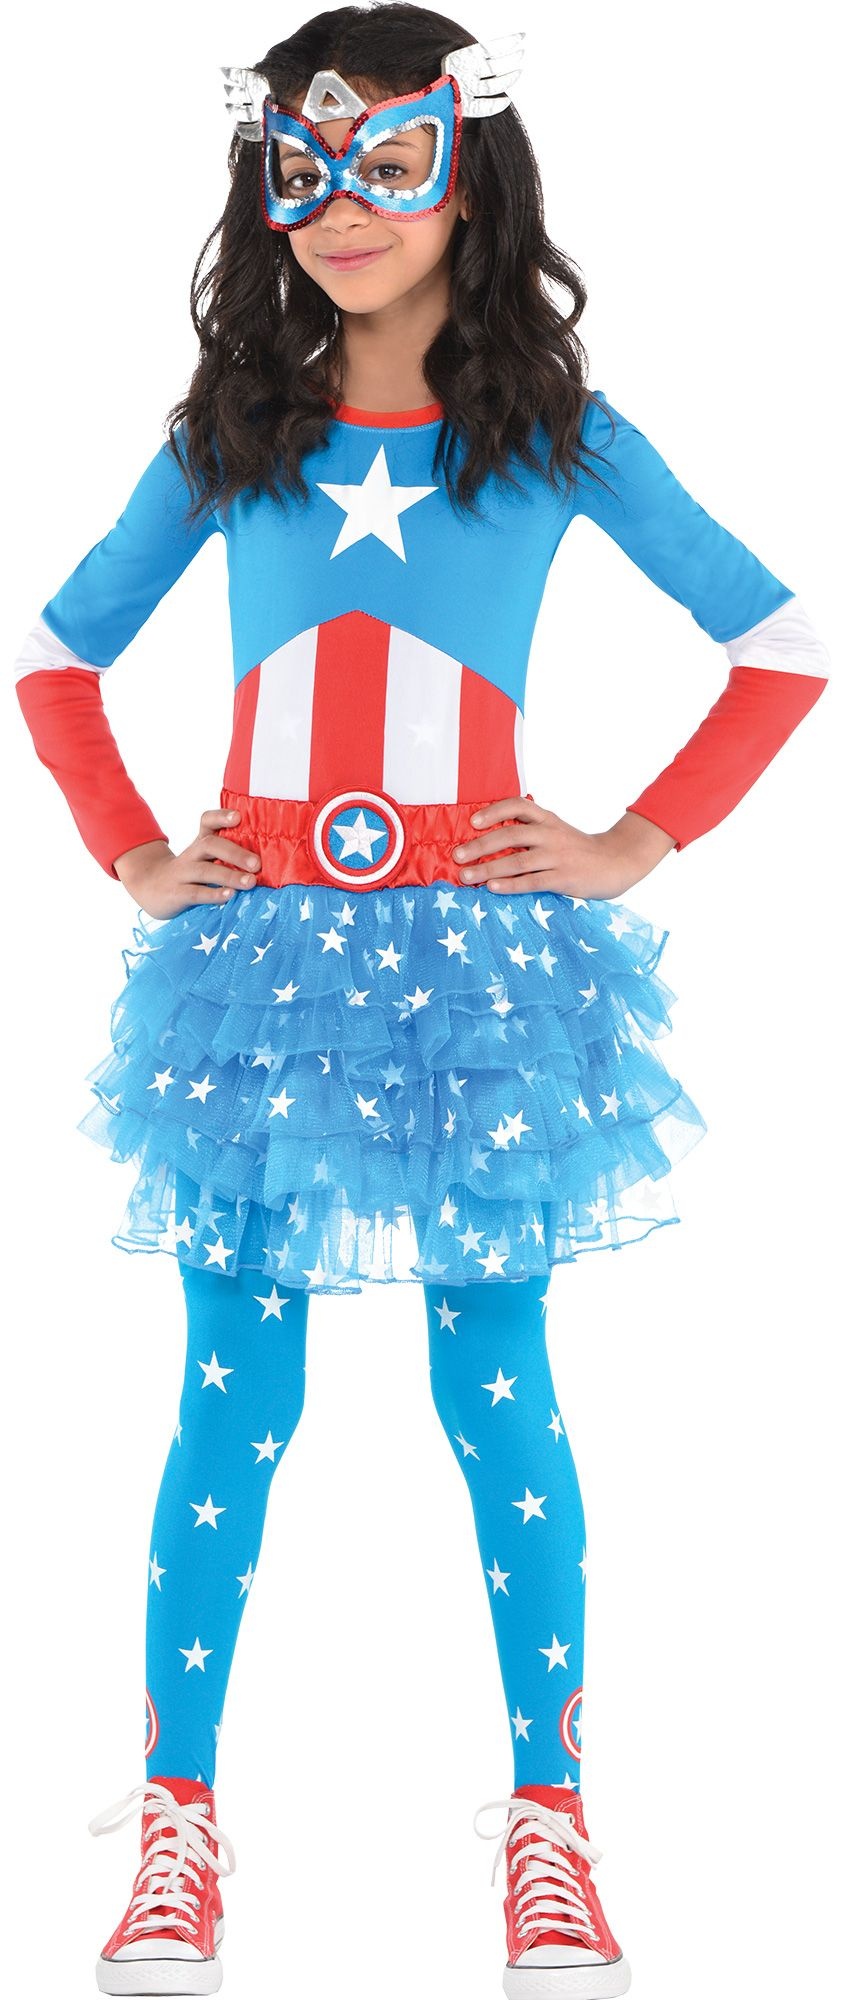 Create Your Own Girls\' American Dream Costume Accessories | Party City